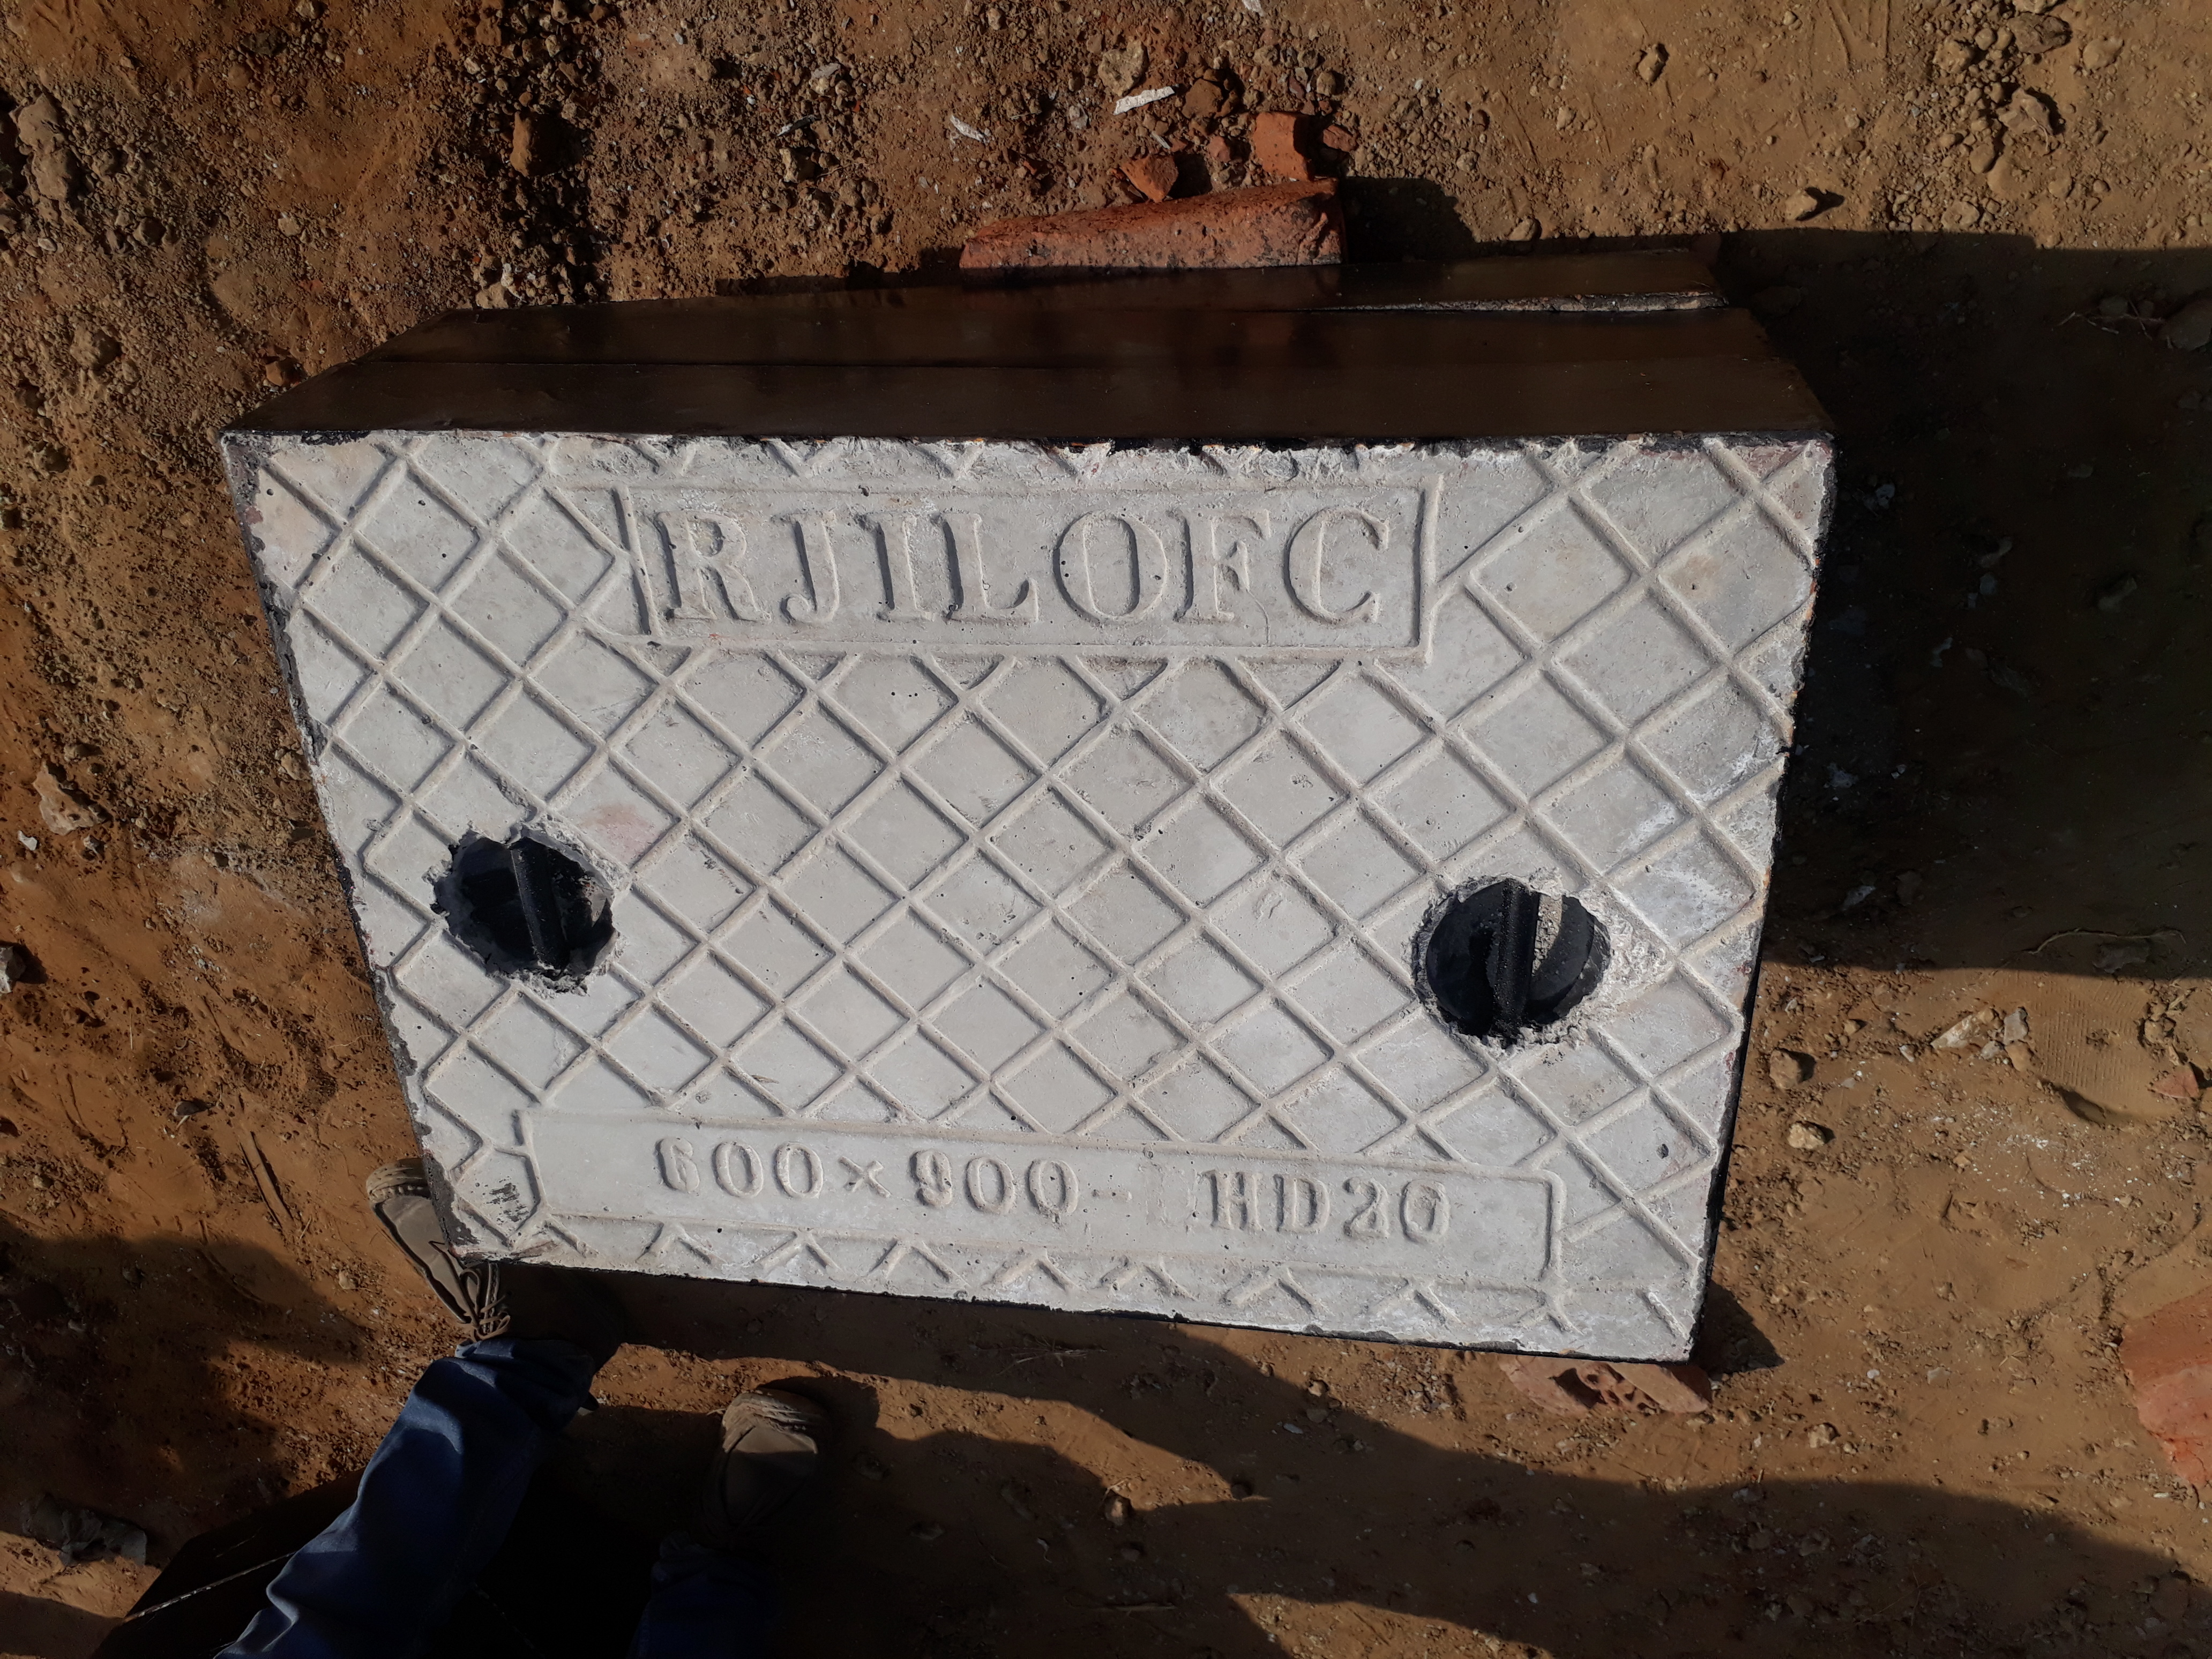 Frp Main Hole Cover